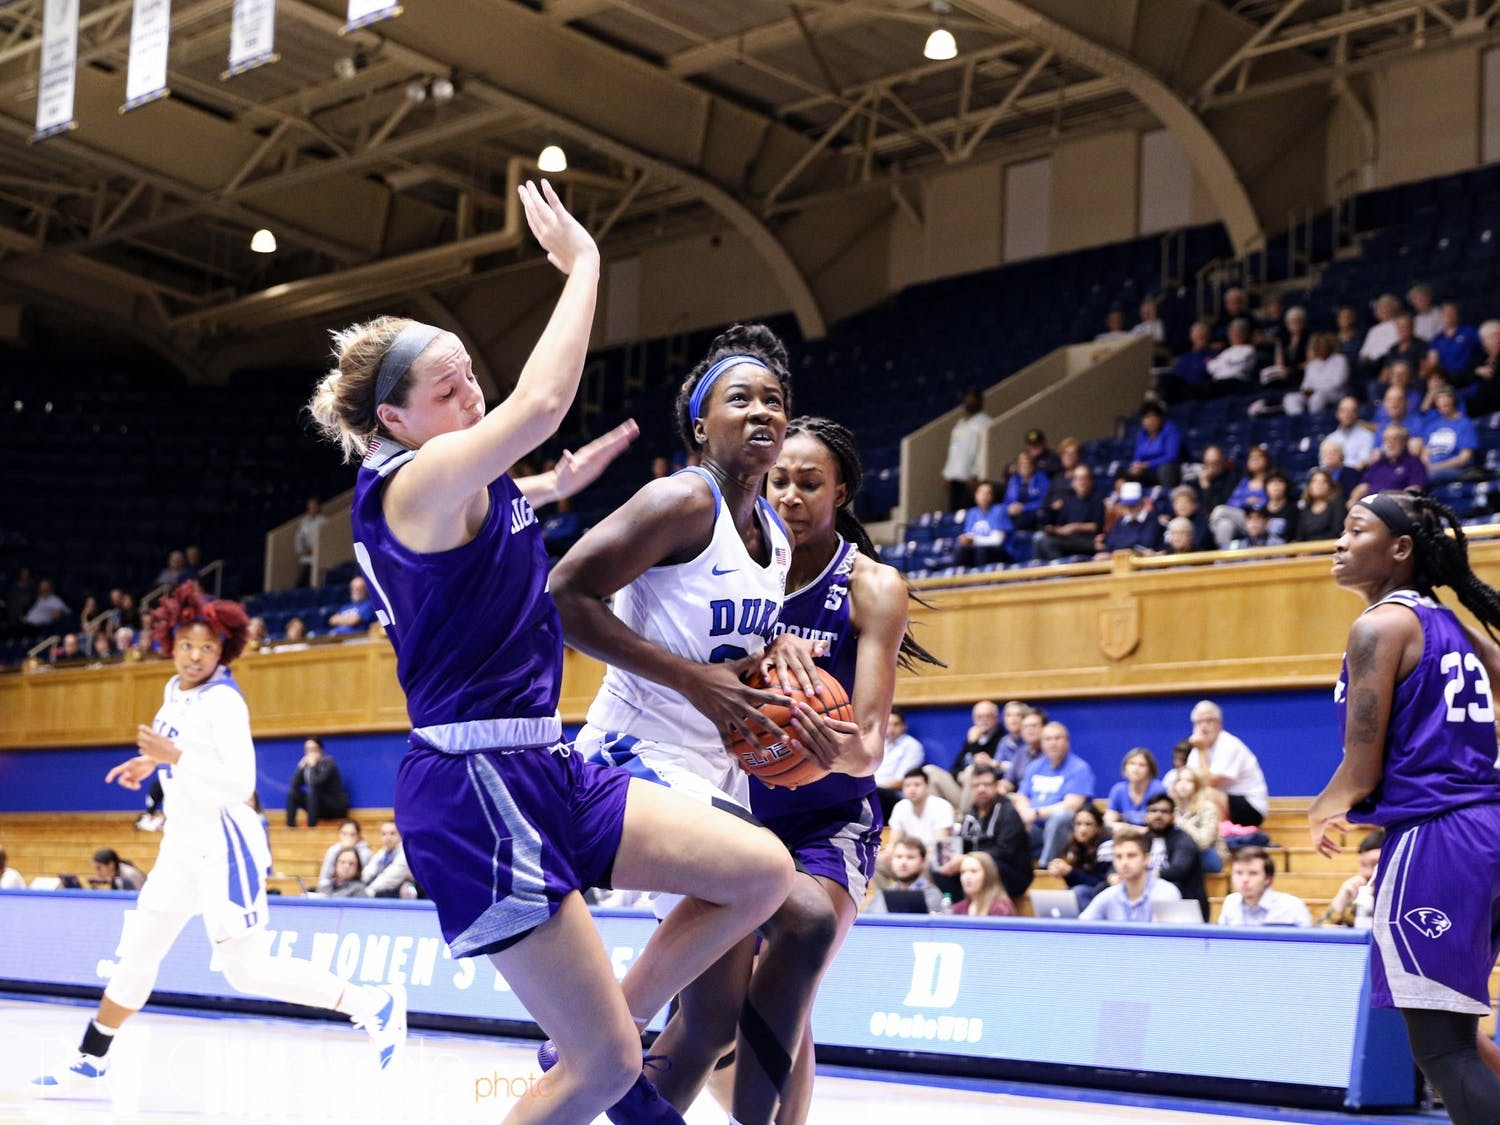 Akinbode-James has a high ceiling for this season if she can limit her turnovers and fouls.